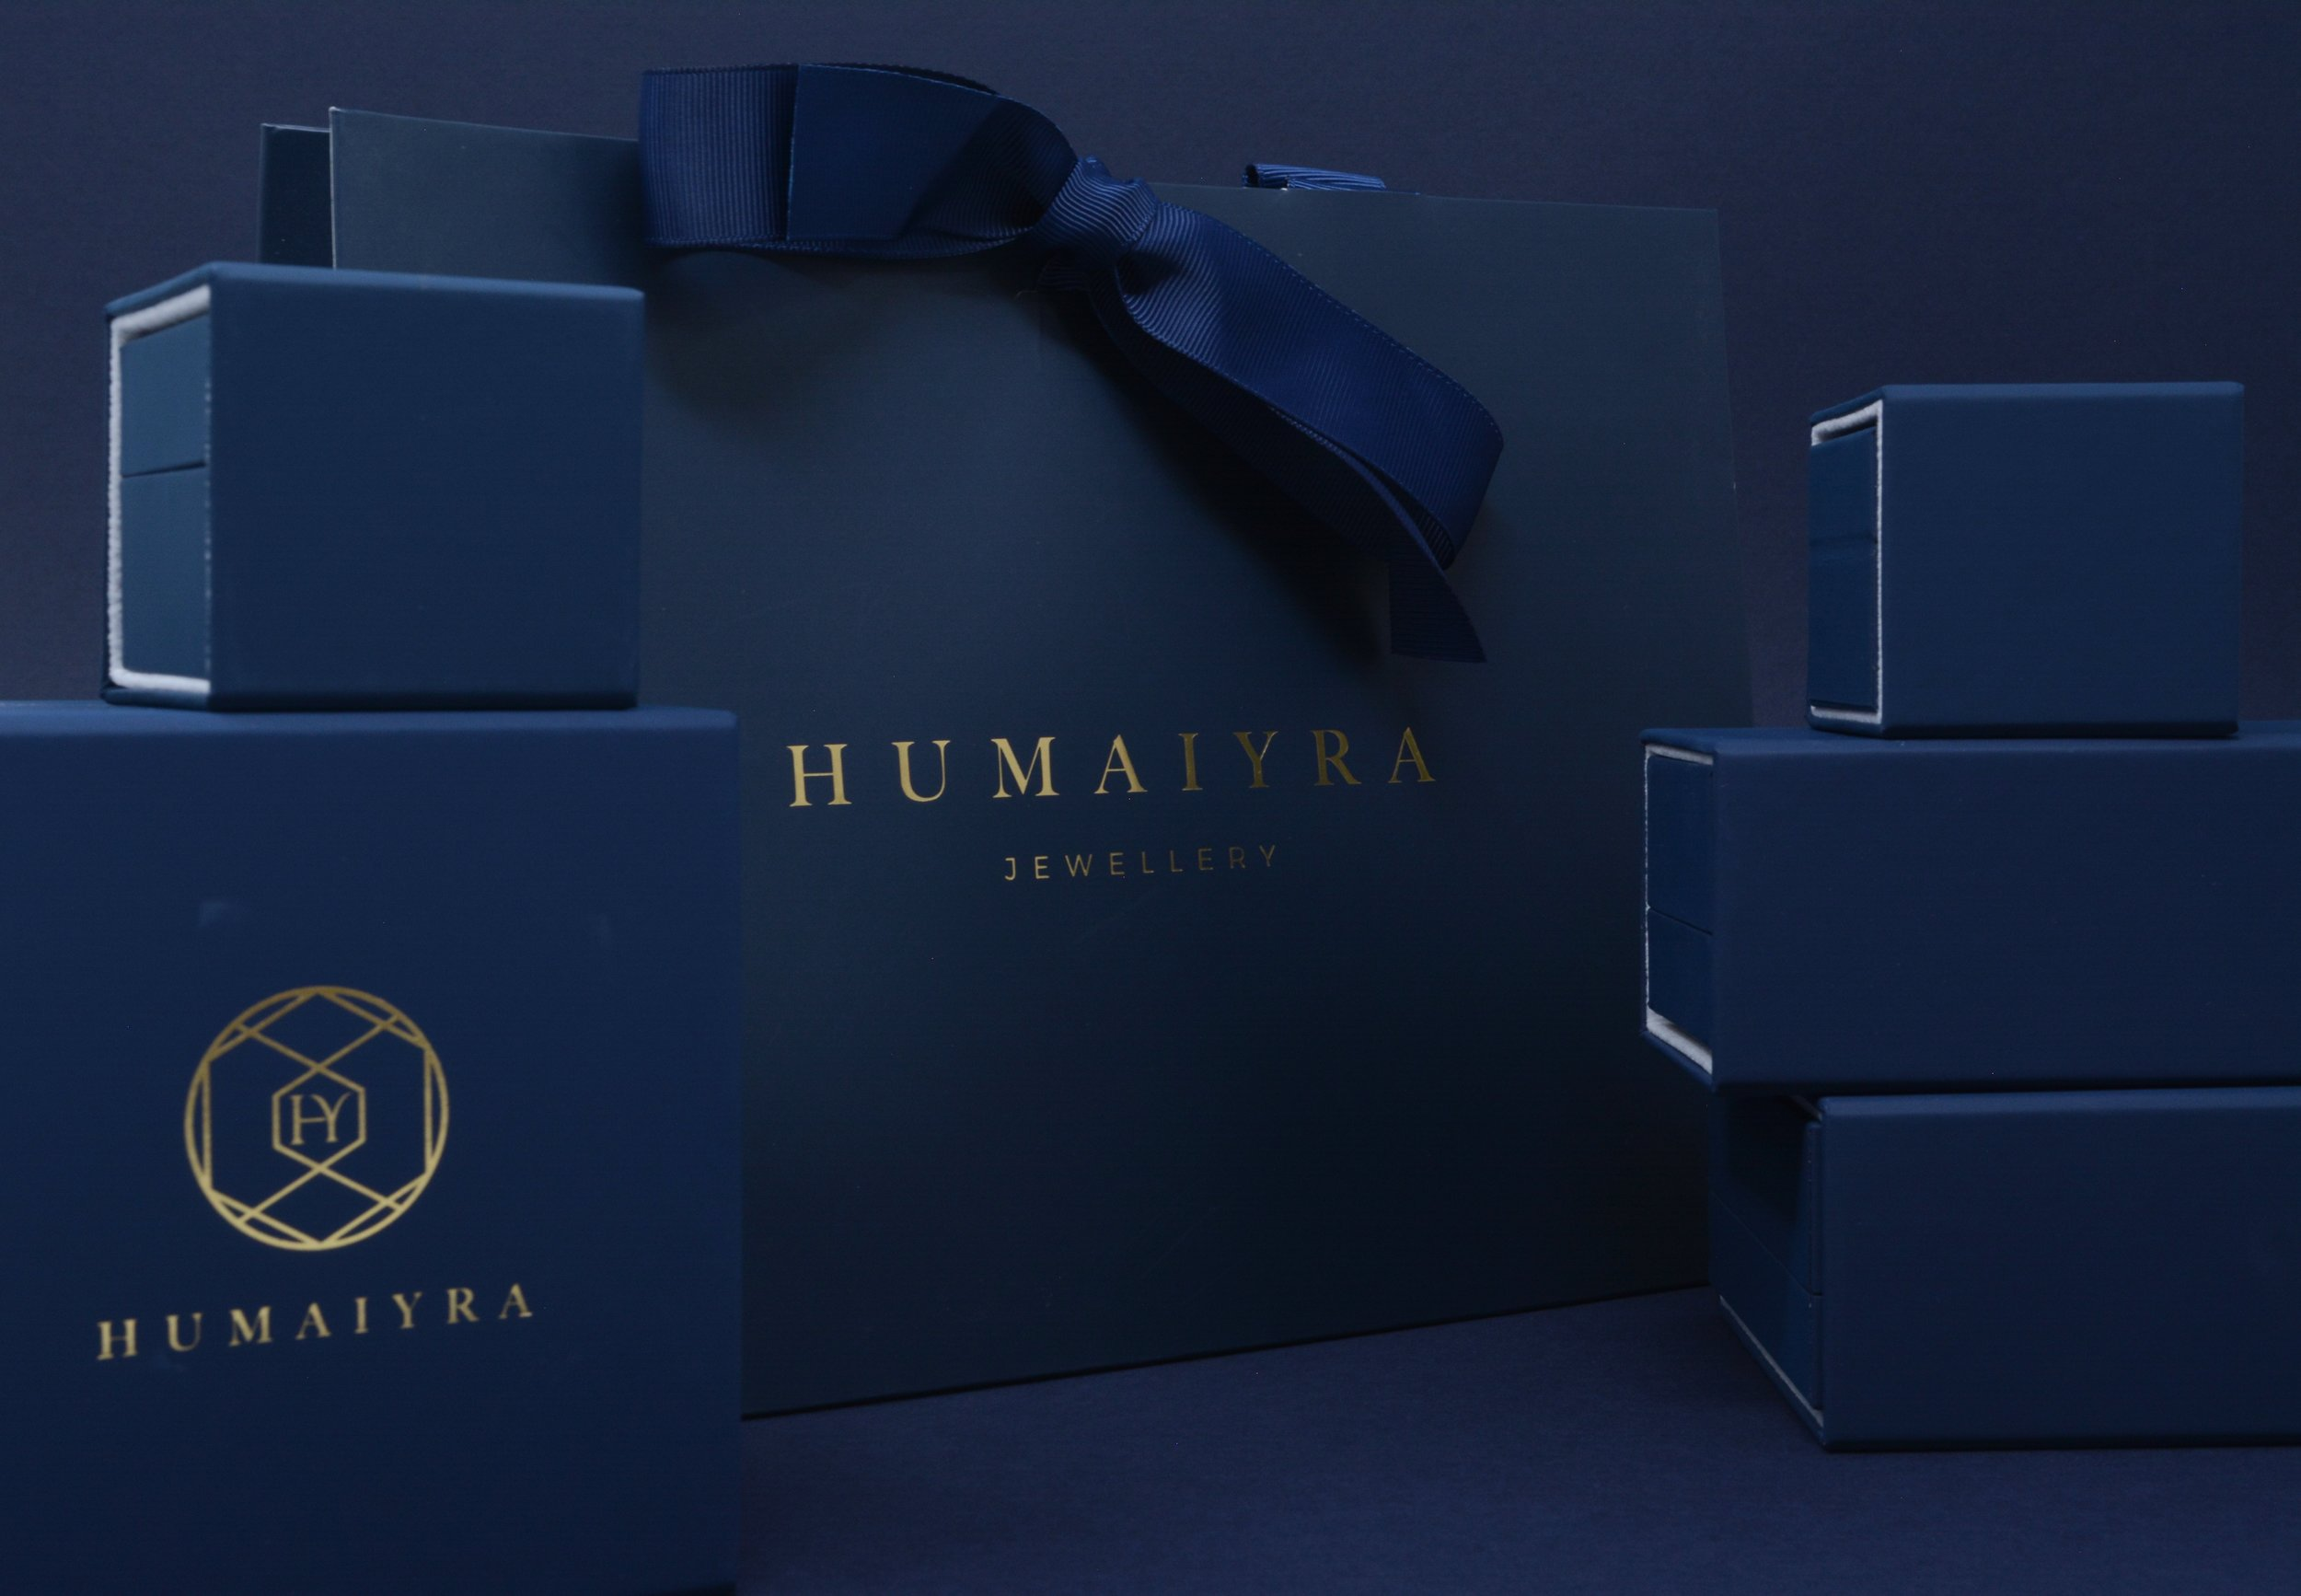 The Perfect Gift - Nestled inside through the layers, you will find our signature rich blue jewellery box holding your jewels and a complimentary gift bag, a complete customer experience.